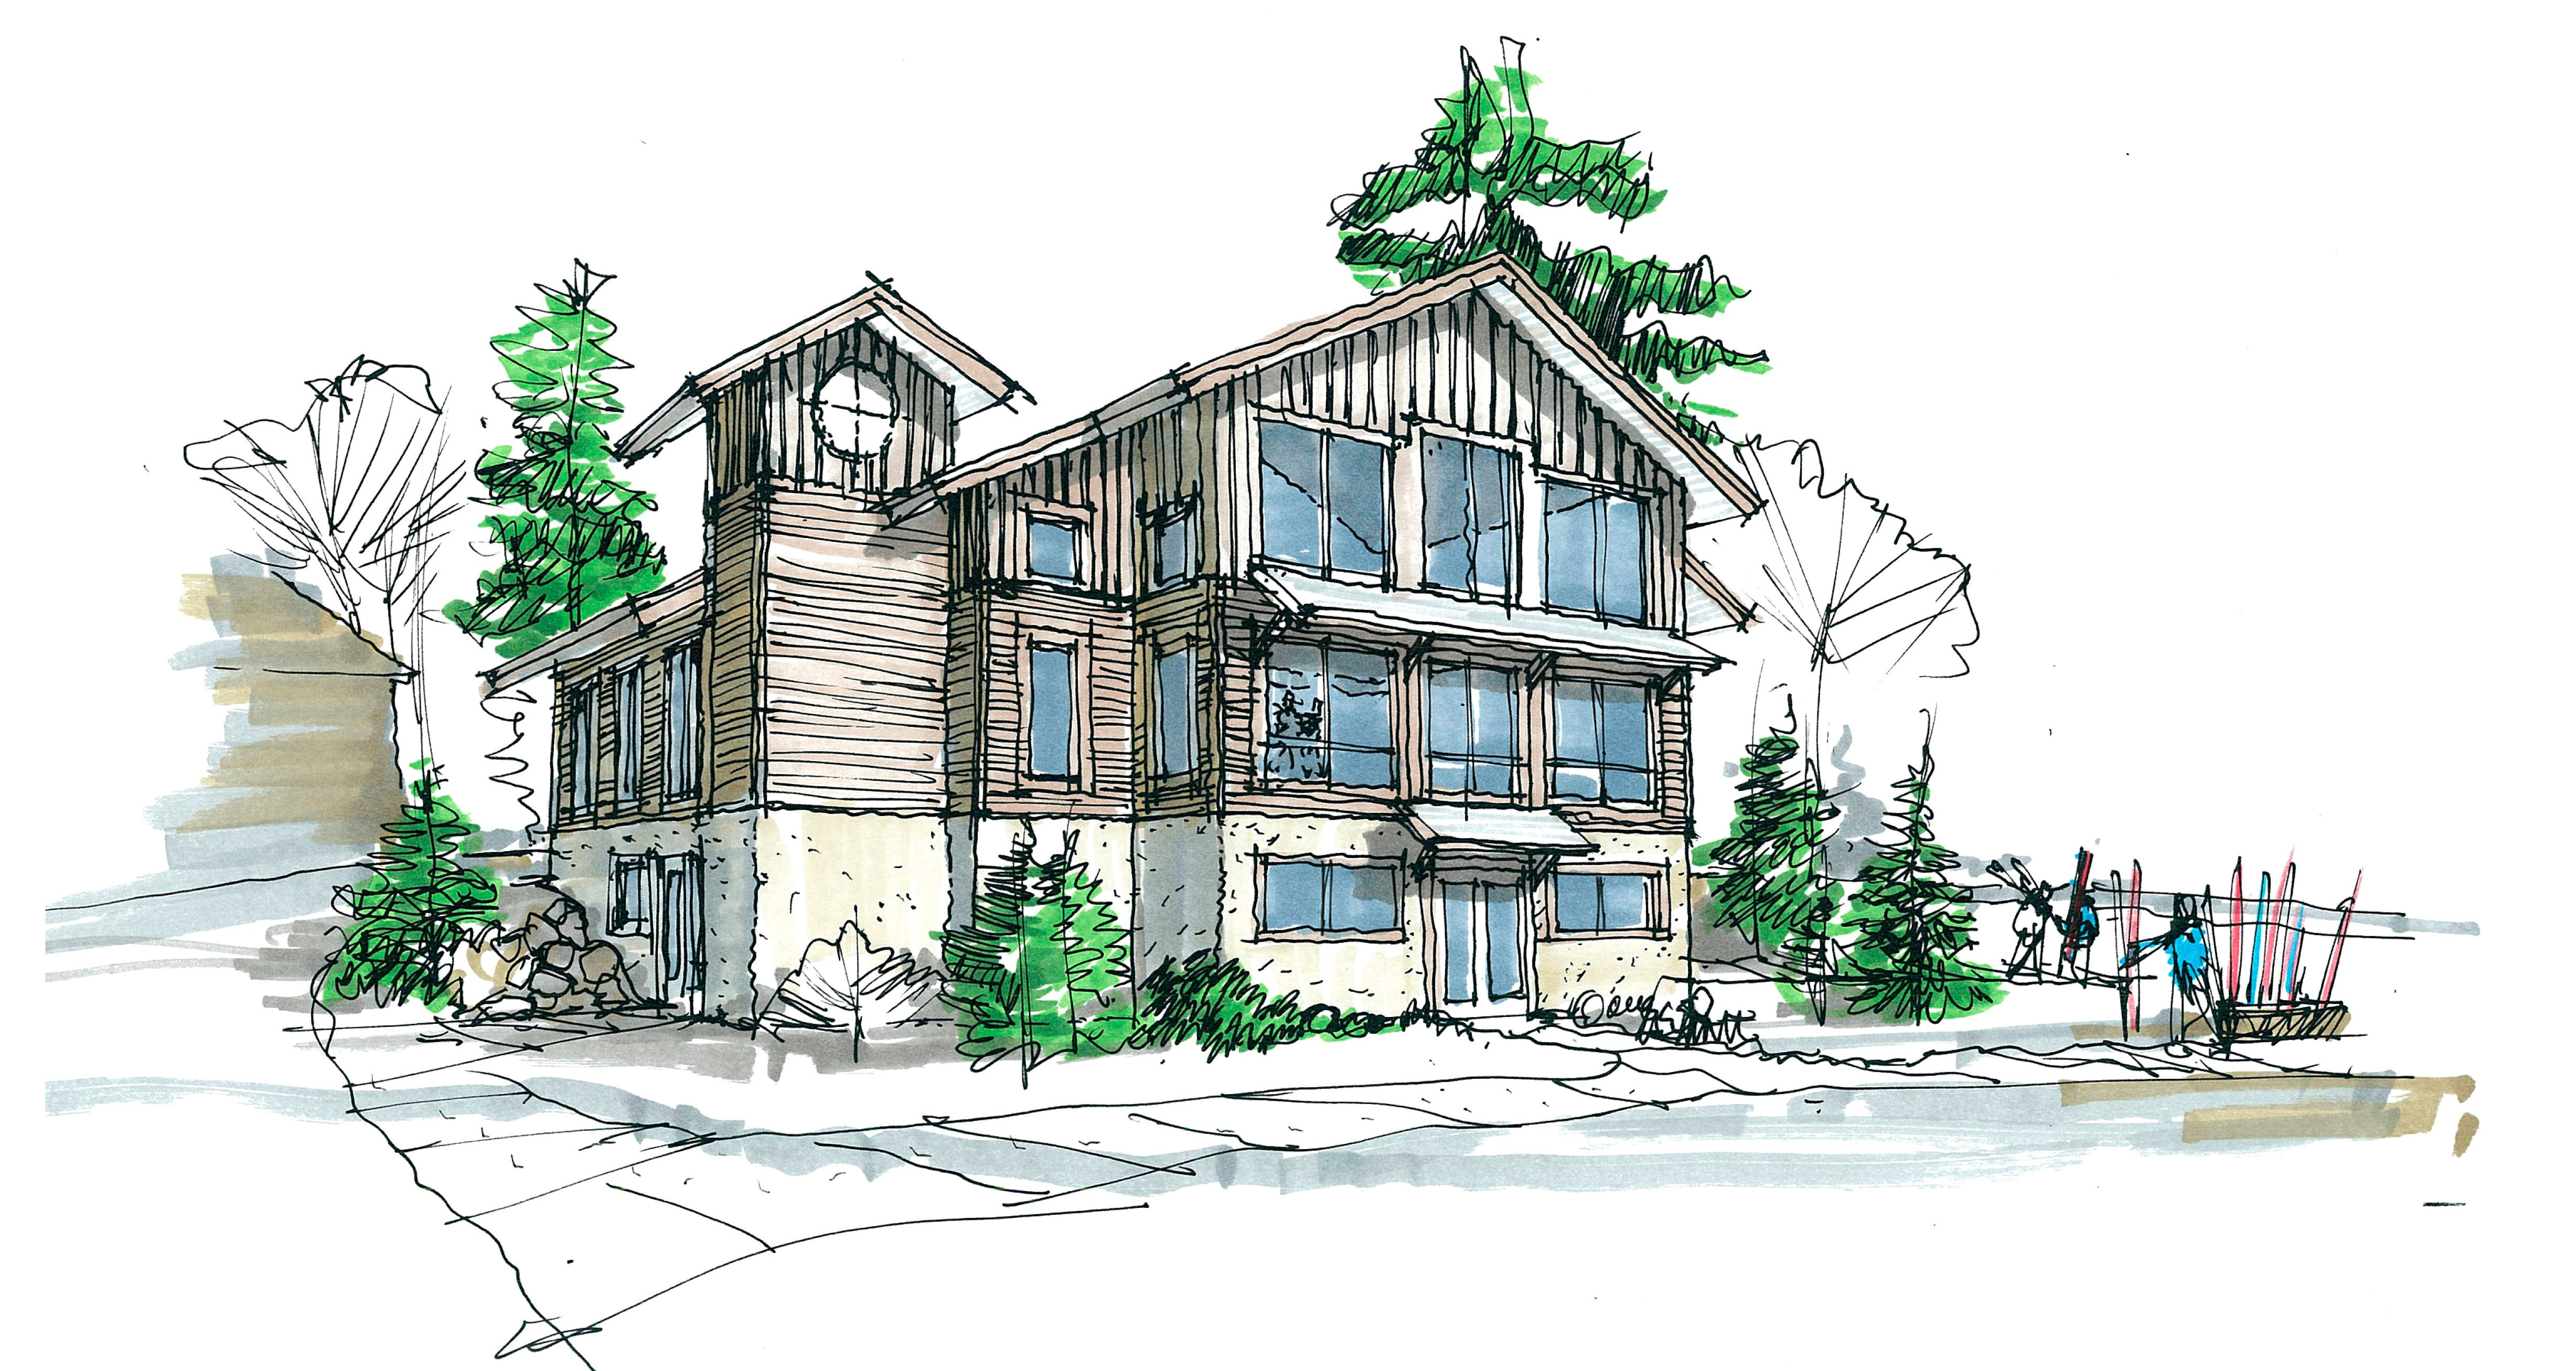 chalet drawing